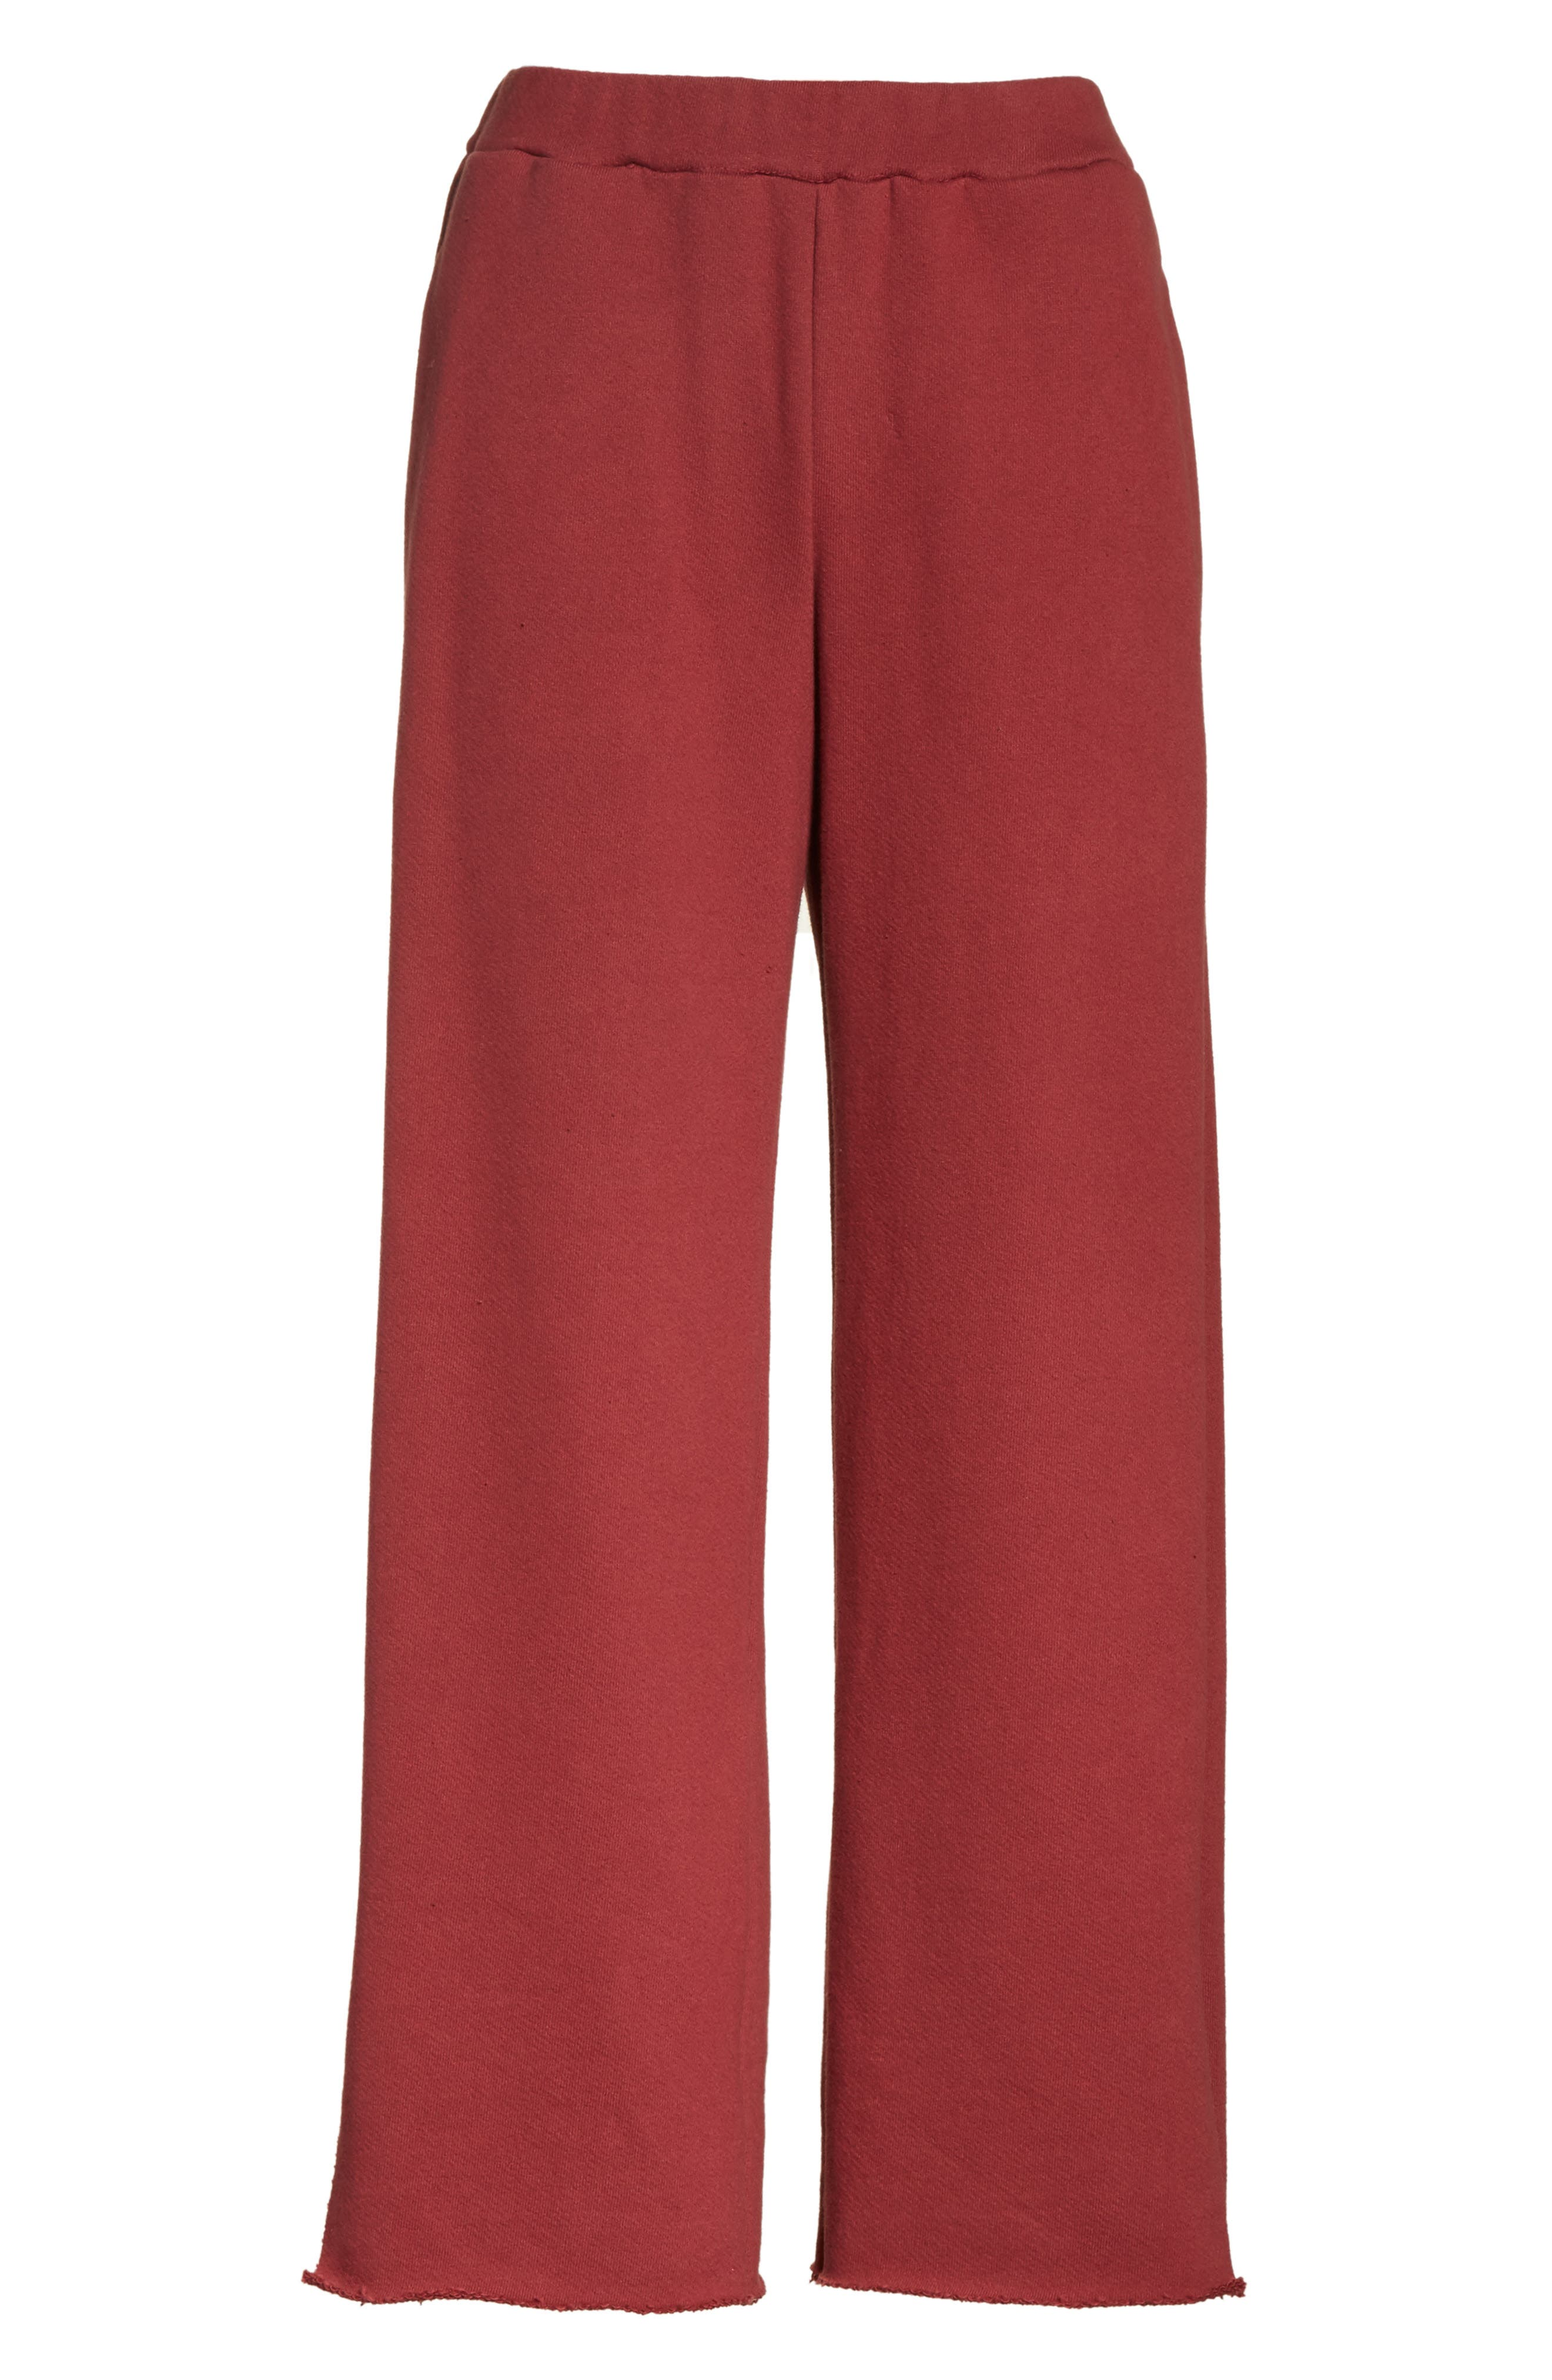 Canal French Terry Sweatpants,                             Alternate thumbnail 4, color,                             Tegola Pink